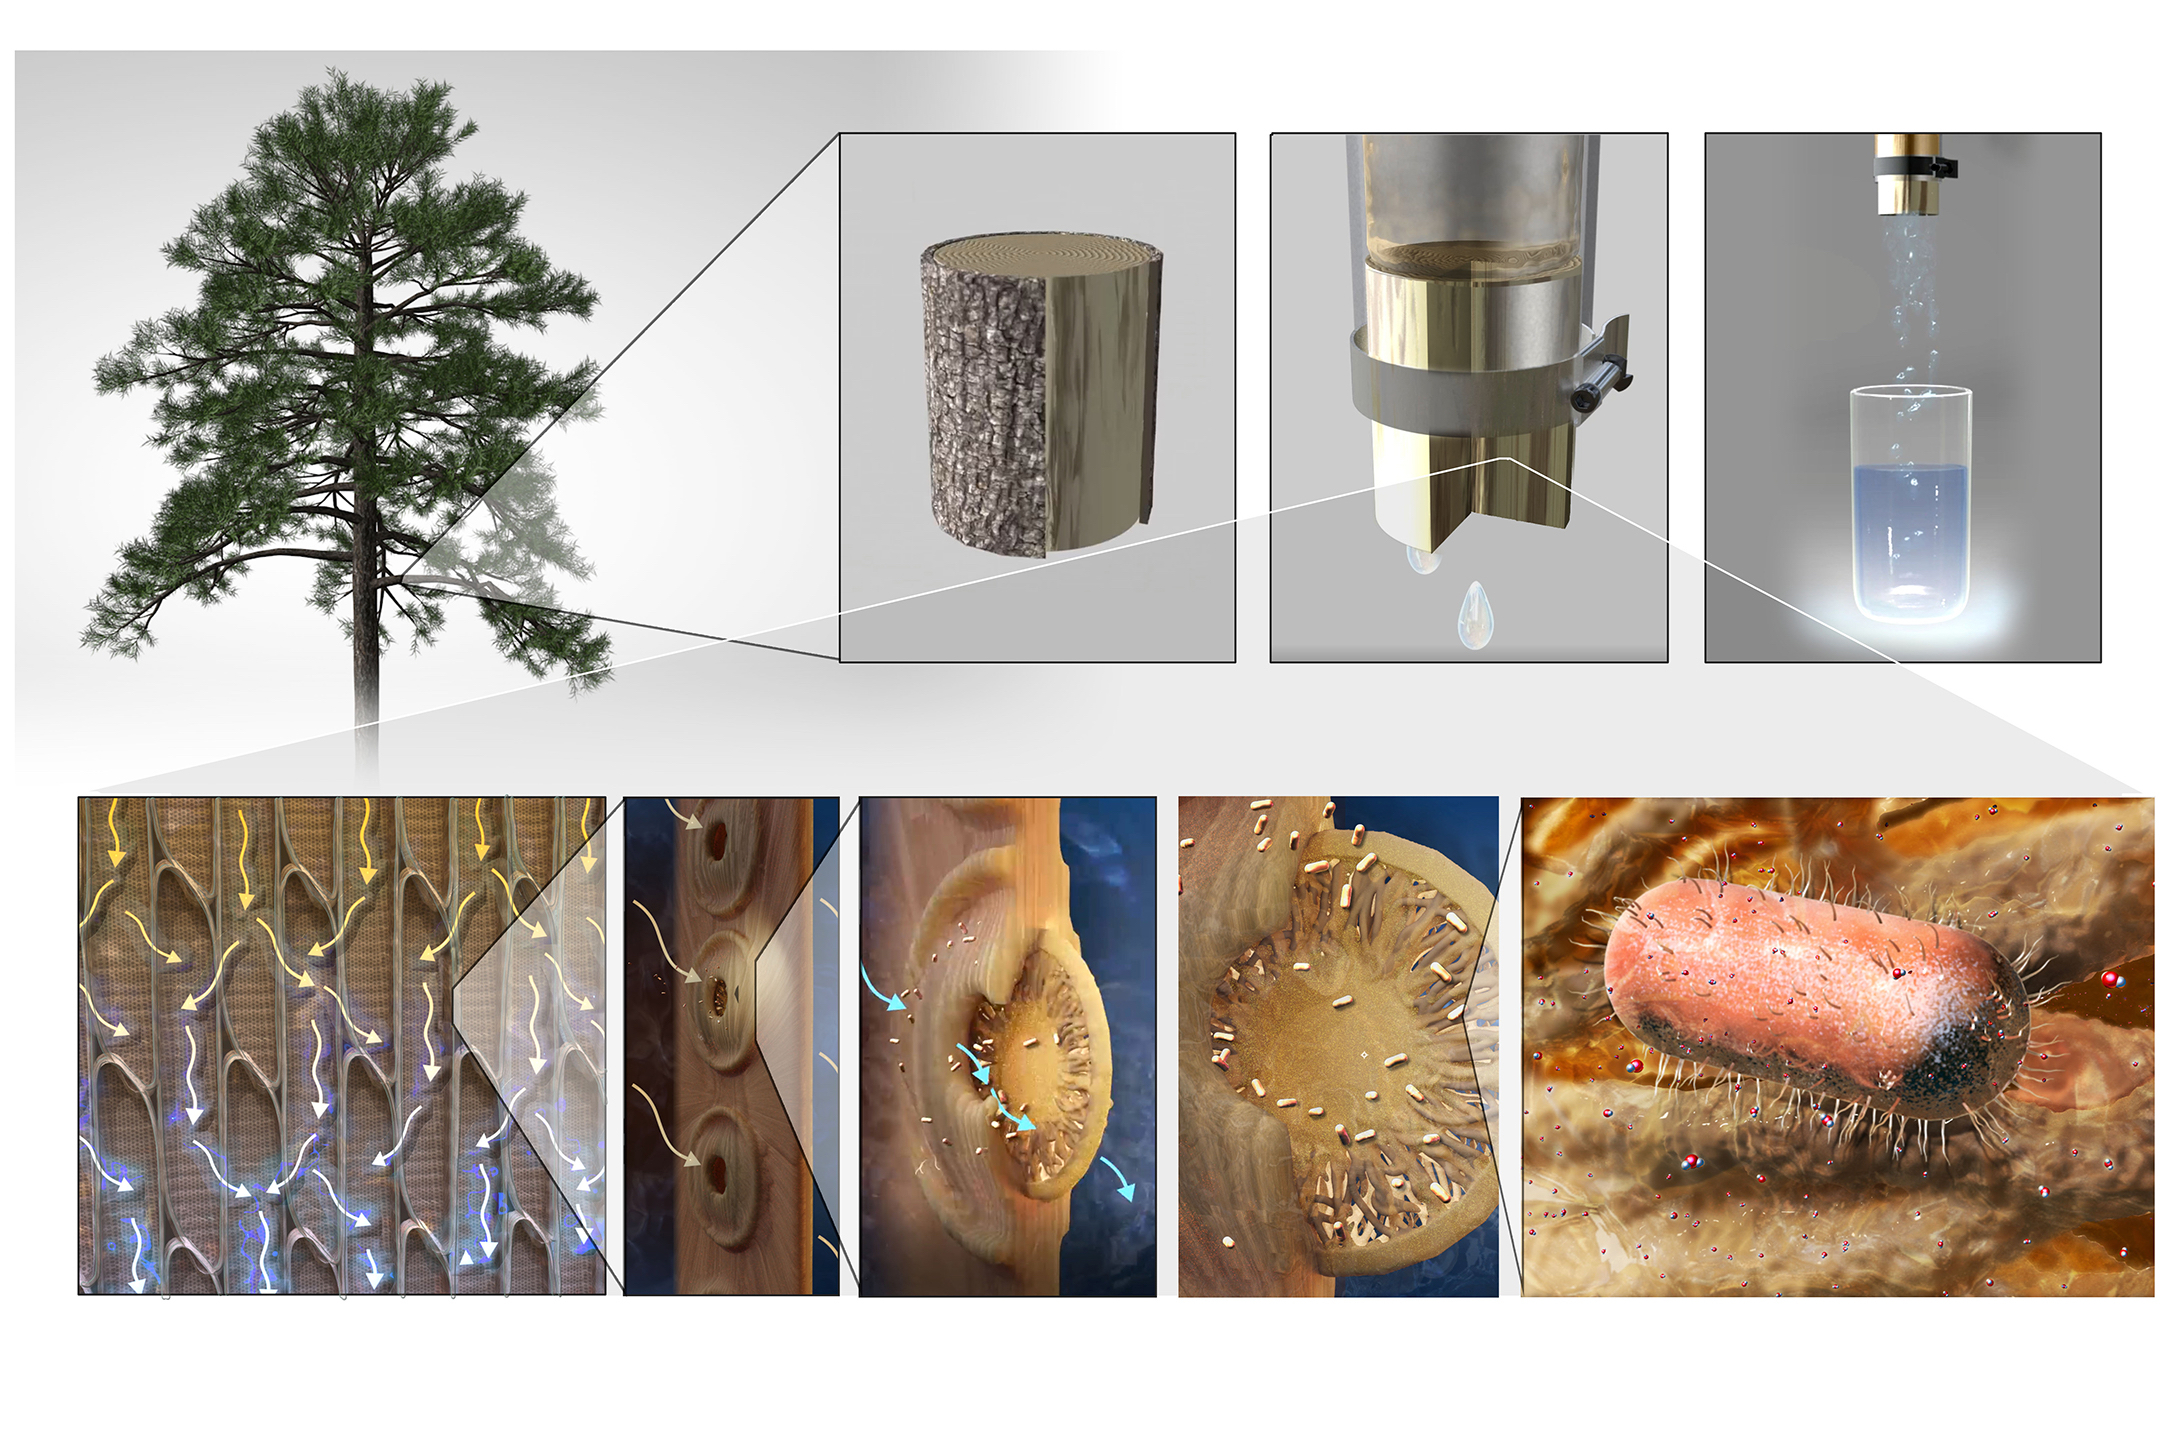 Xylem in sapwood can be used for water filtration (top) – it is made up of conduits that are interconnected by membranes which filter out contaminants such as bacteria (bottom)